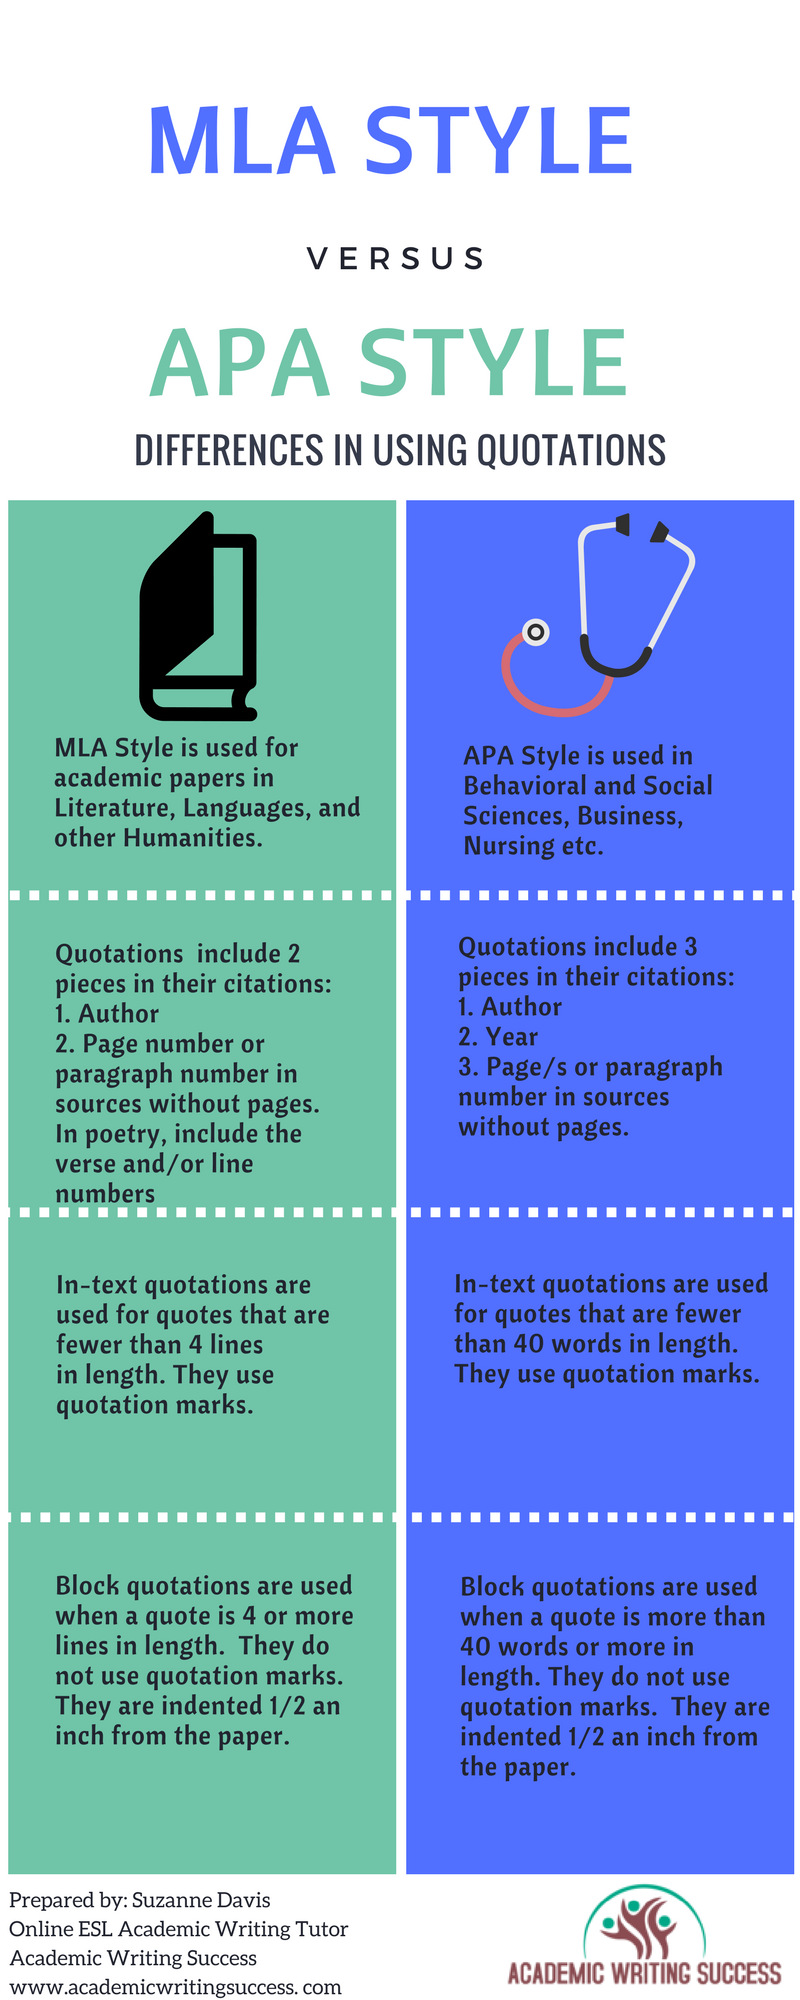 Mla Quote Differences Between Using Quotations In Apa And Mla Stylefor Help